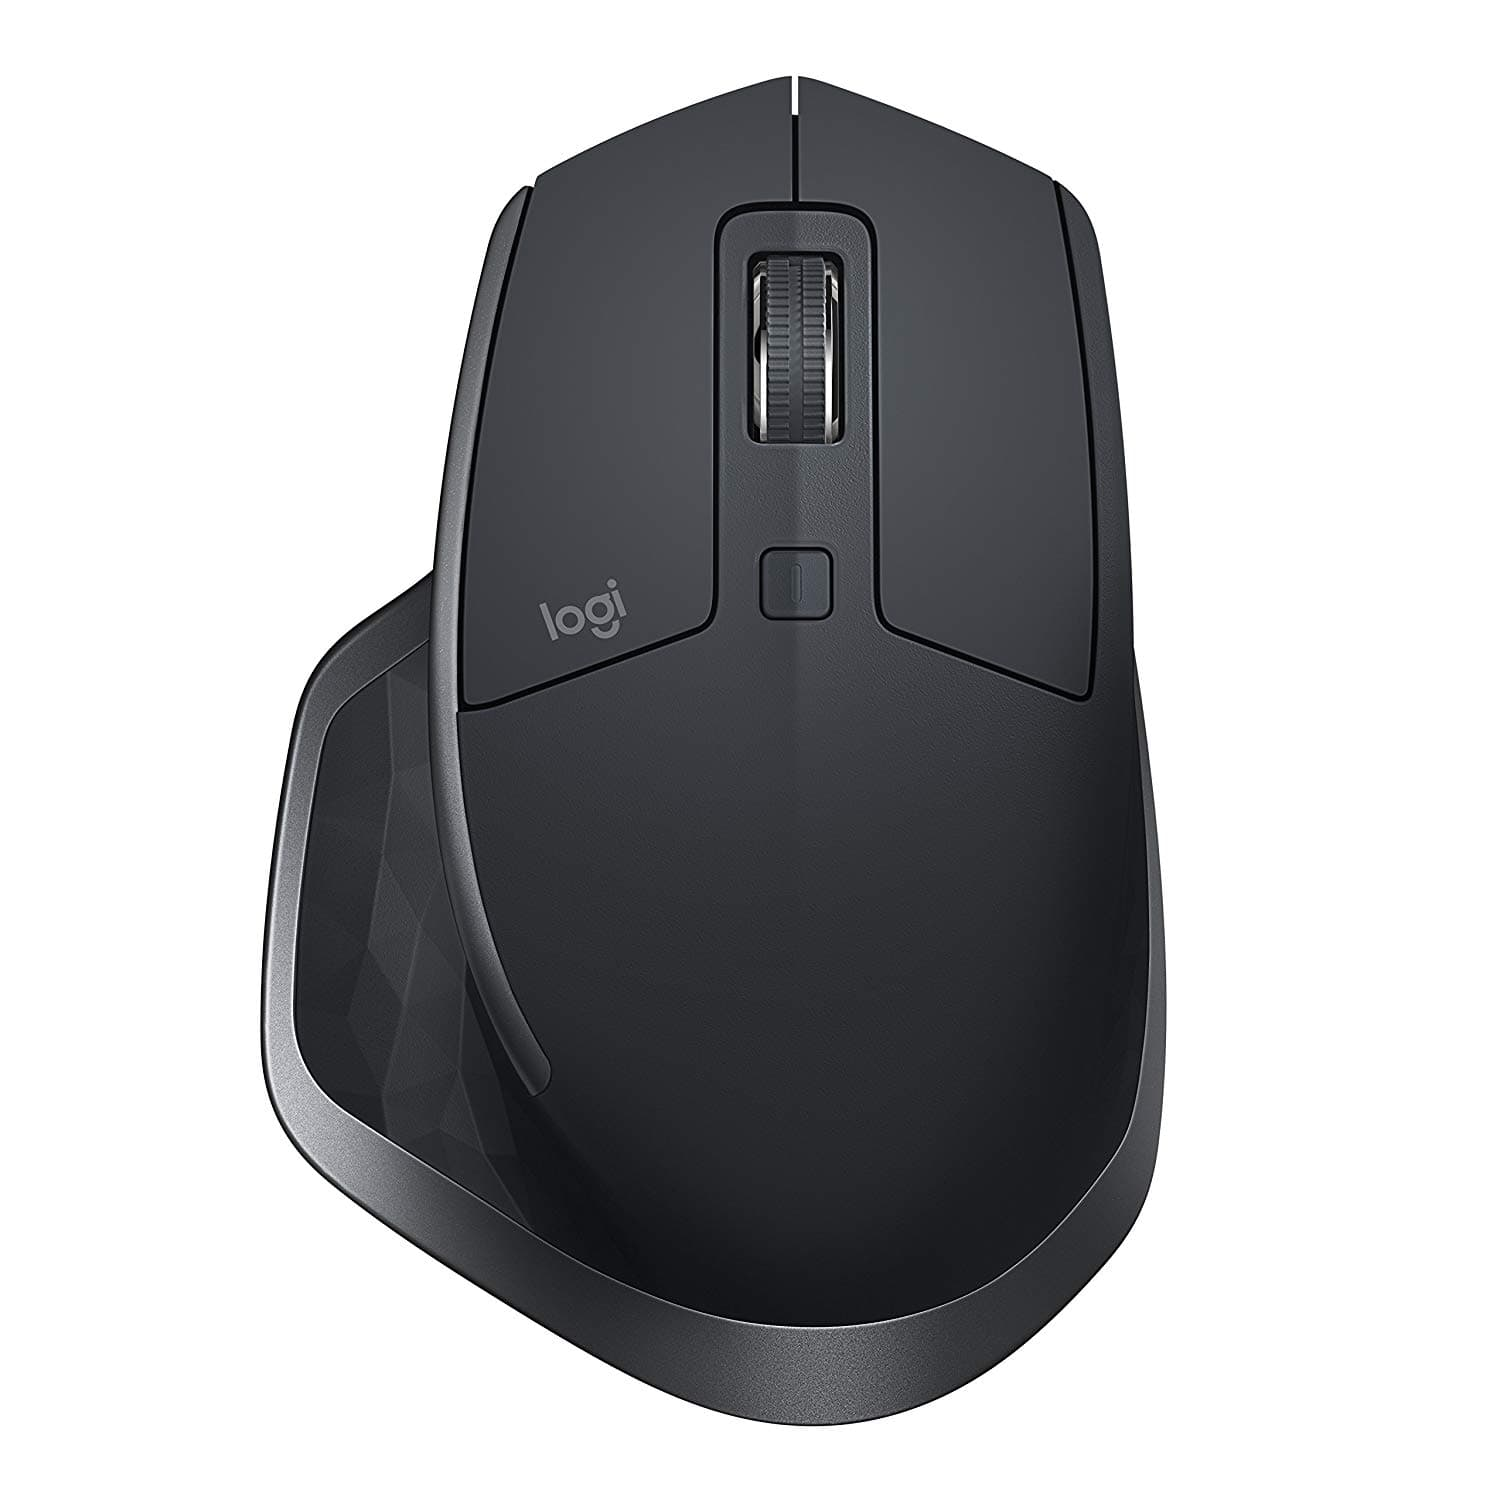 Logitech MX Master 2S Wireless Mouse, Graphite $65.40